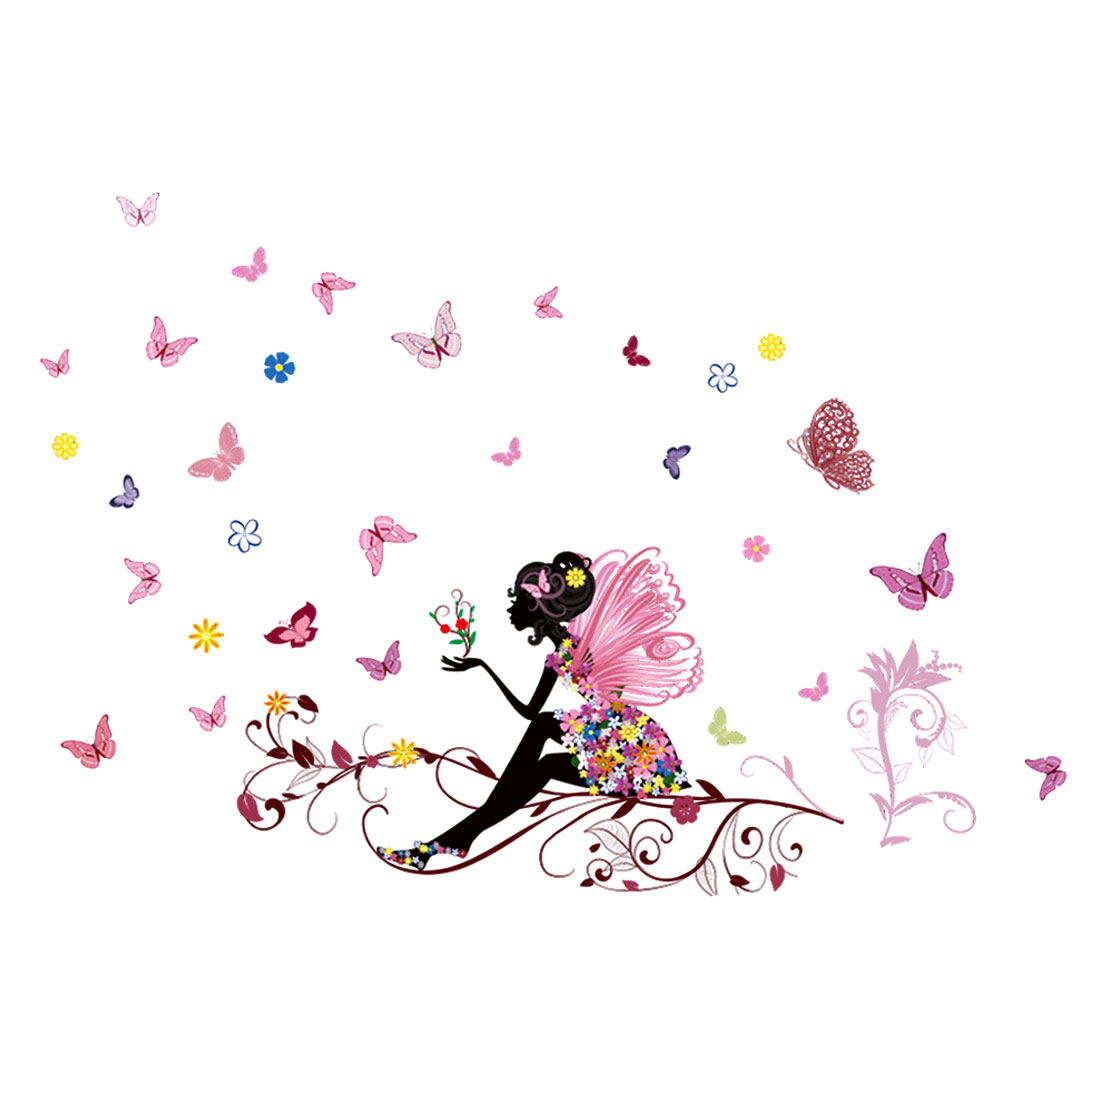 Butterfly Flower Bicycle Girls Home Room Decor Peel and Stick Wall Decals Art Stickers Mural